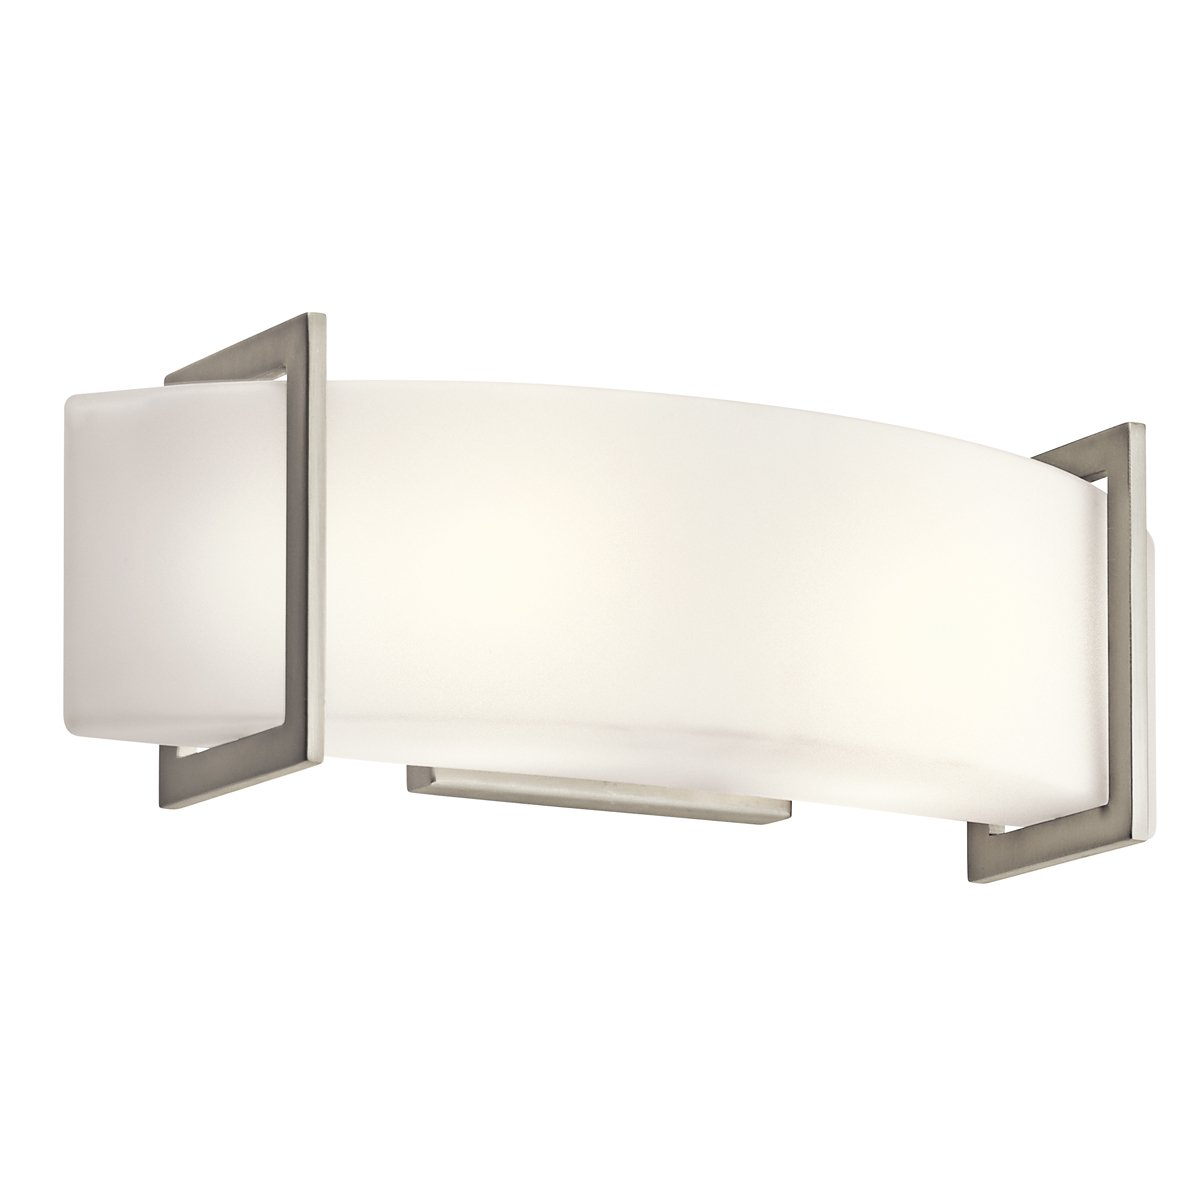 Kichler 45218NI Two Light Linear Wall Sconce   Bathroom Light Fixtures    Amazon.com